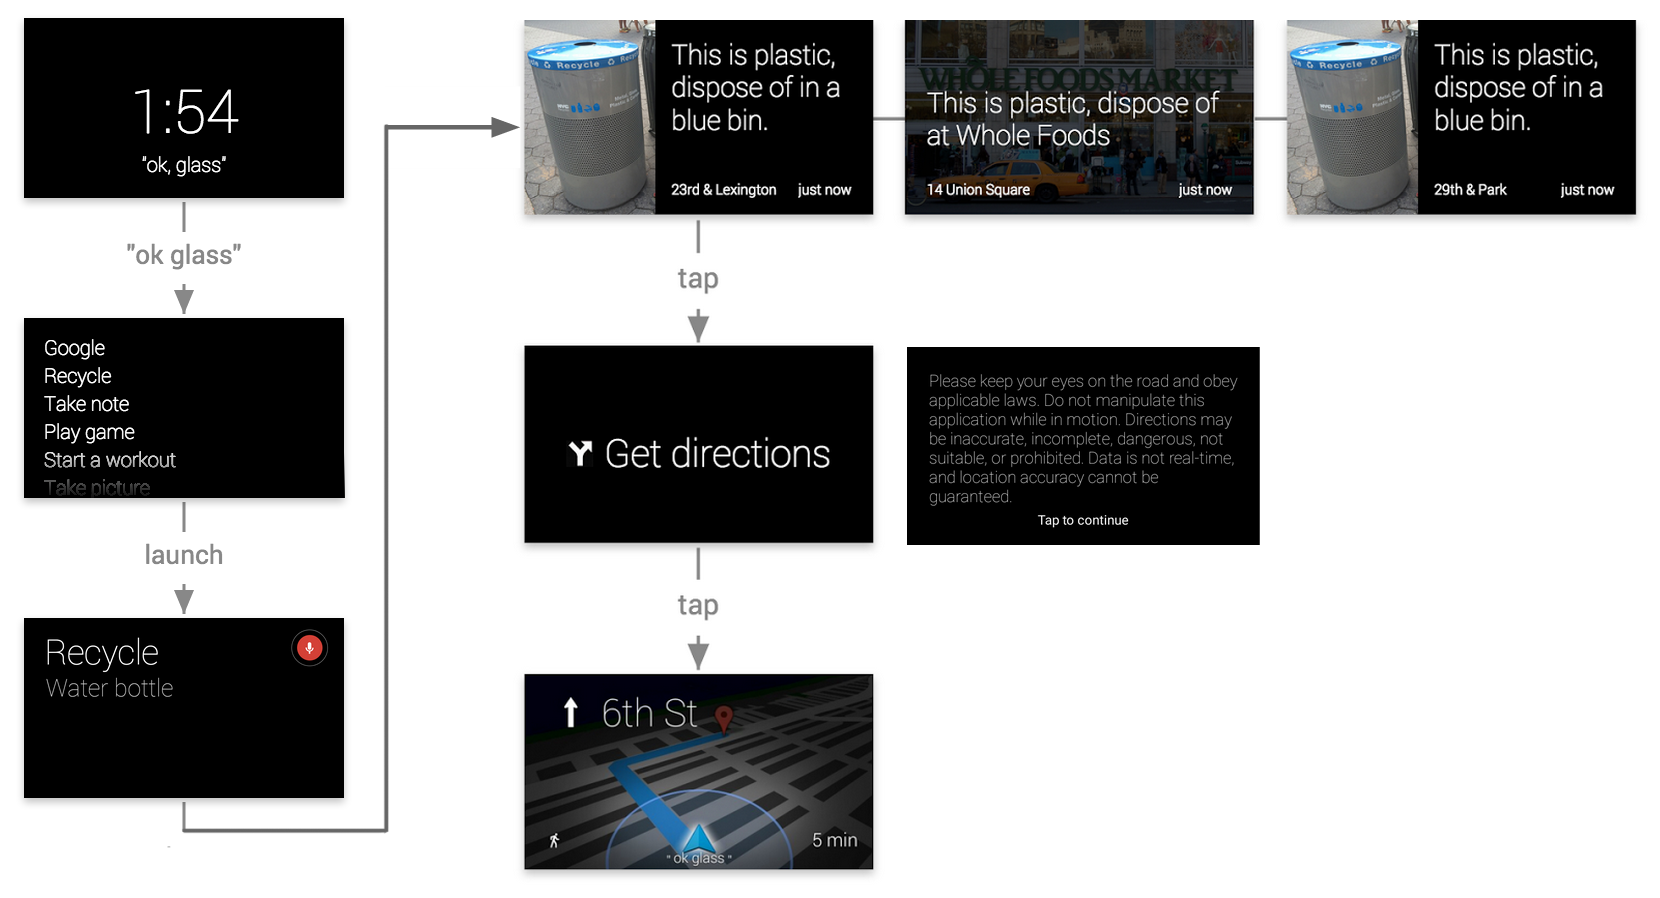 True to Google Glass's nature, we landed on a speech interface for item input.